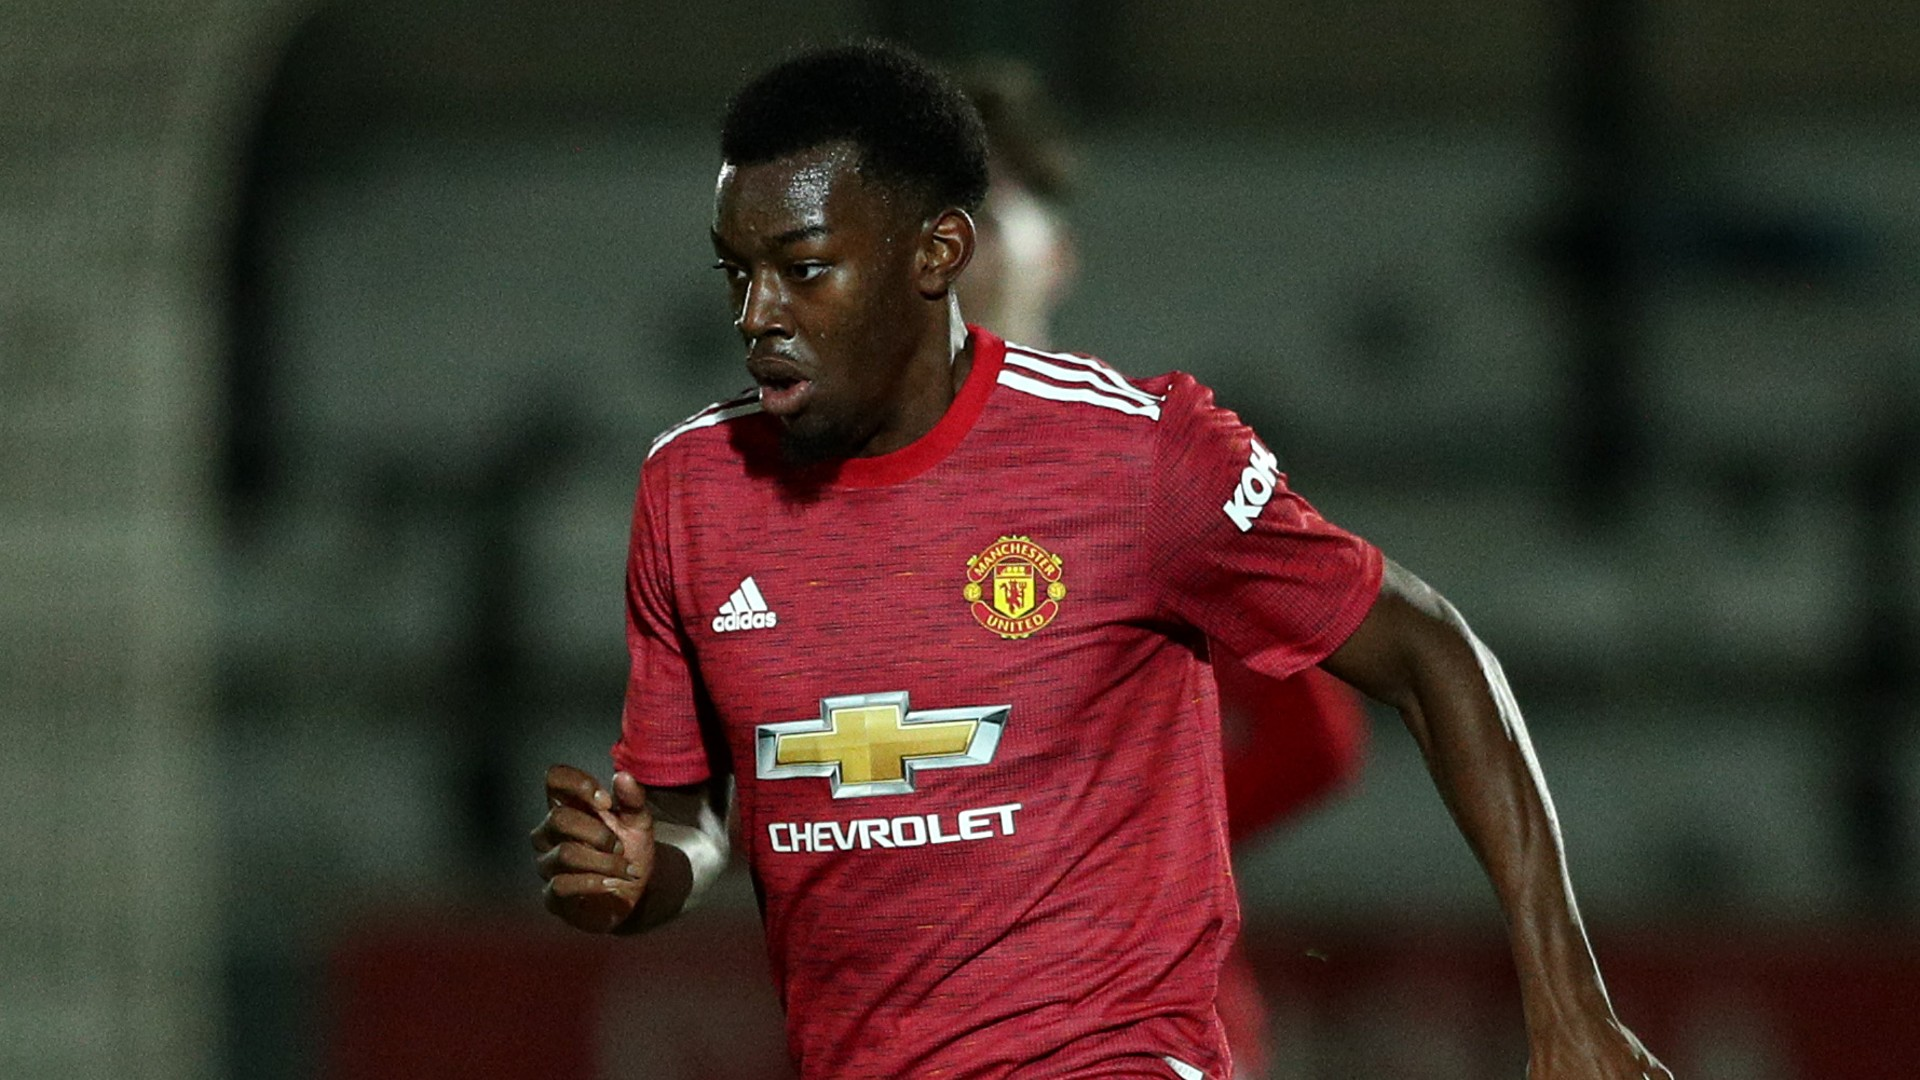 He Sees The Light Of The First Team Elanga The Latest Man Utd Teenager Looking To Impress Solskjaer Goal Com